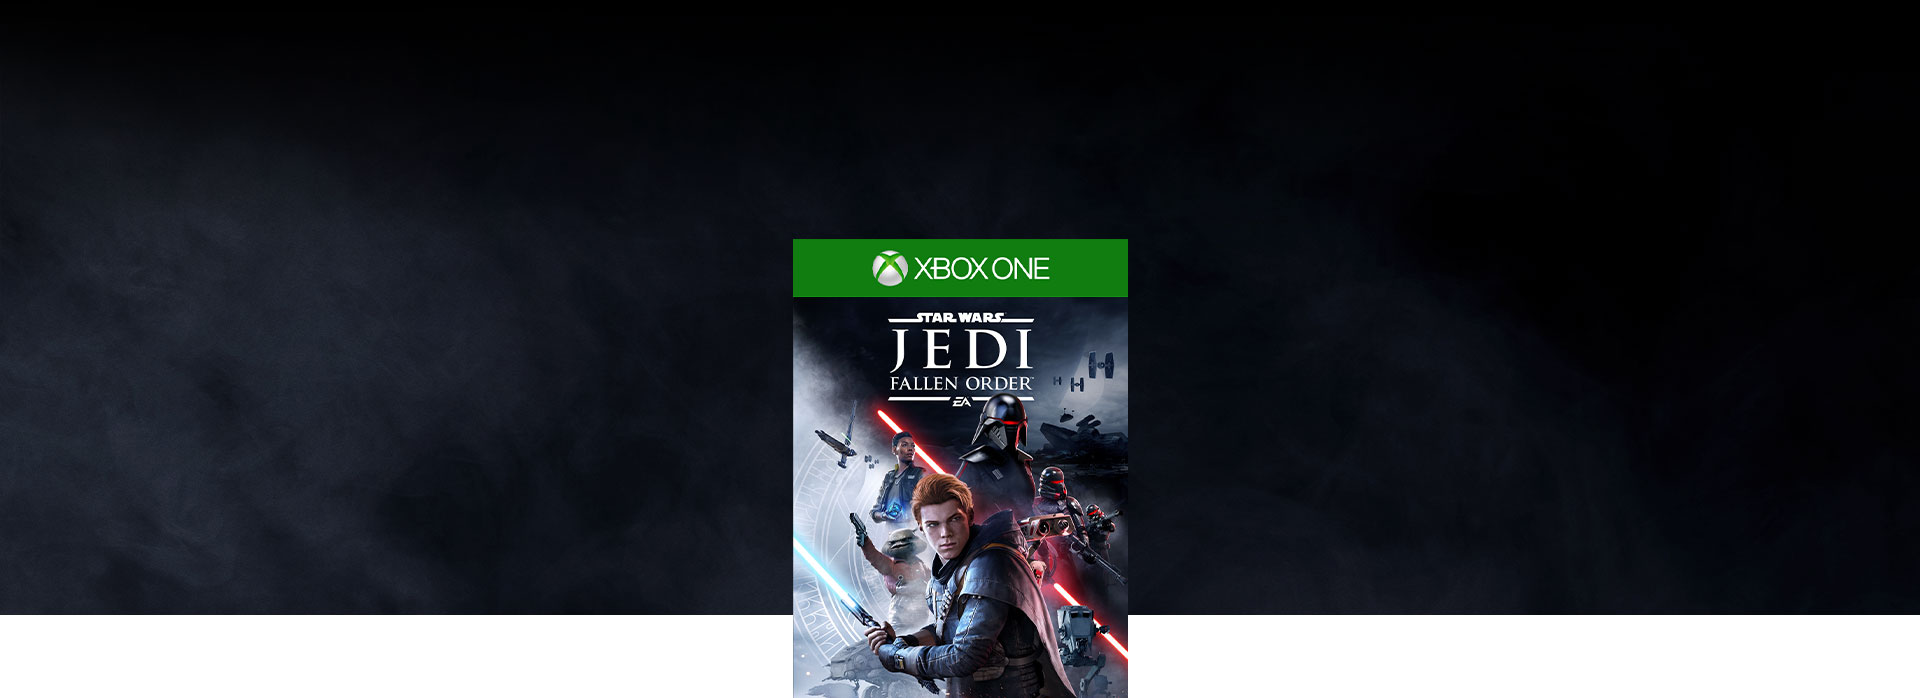 Star Wars Jedi: Fallen Order™ boxshot with smoke in the background